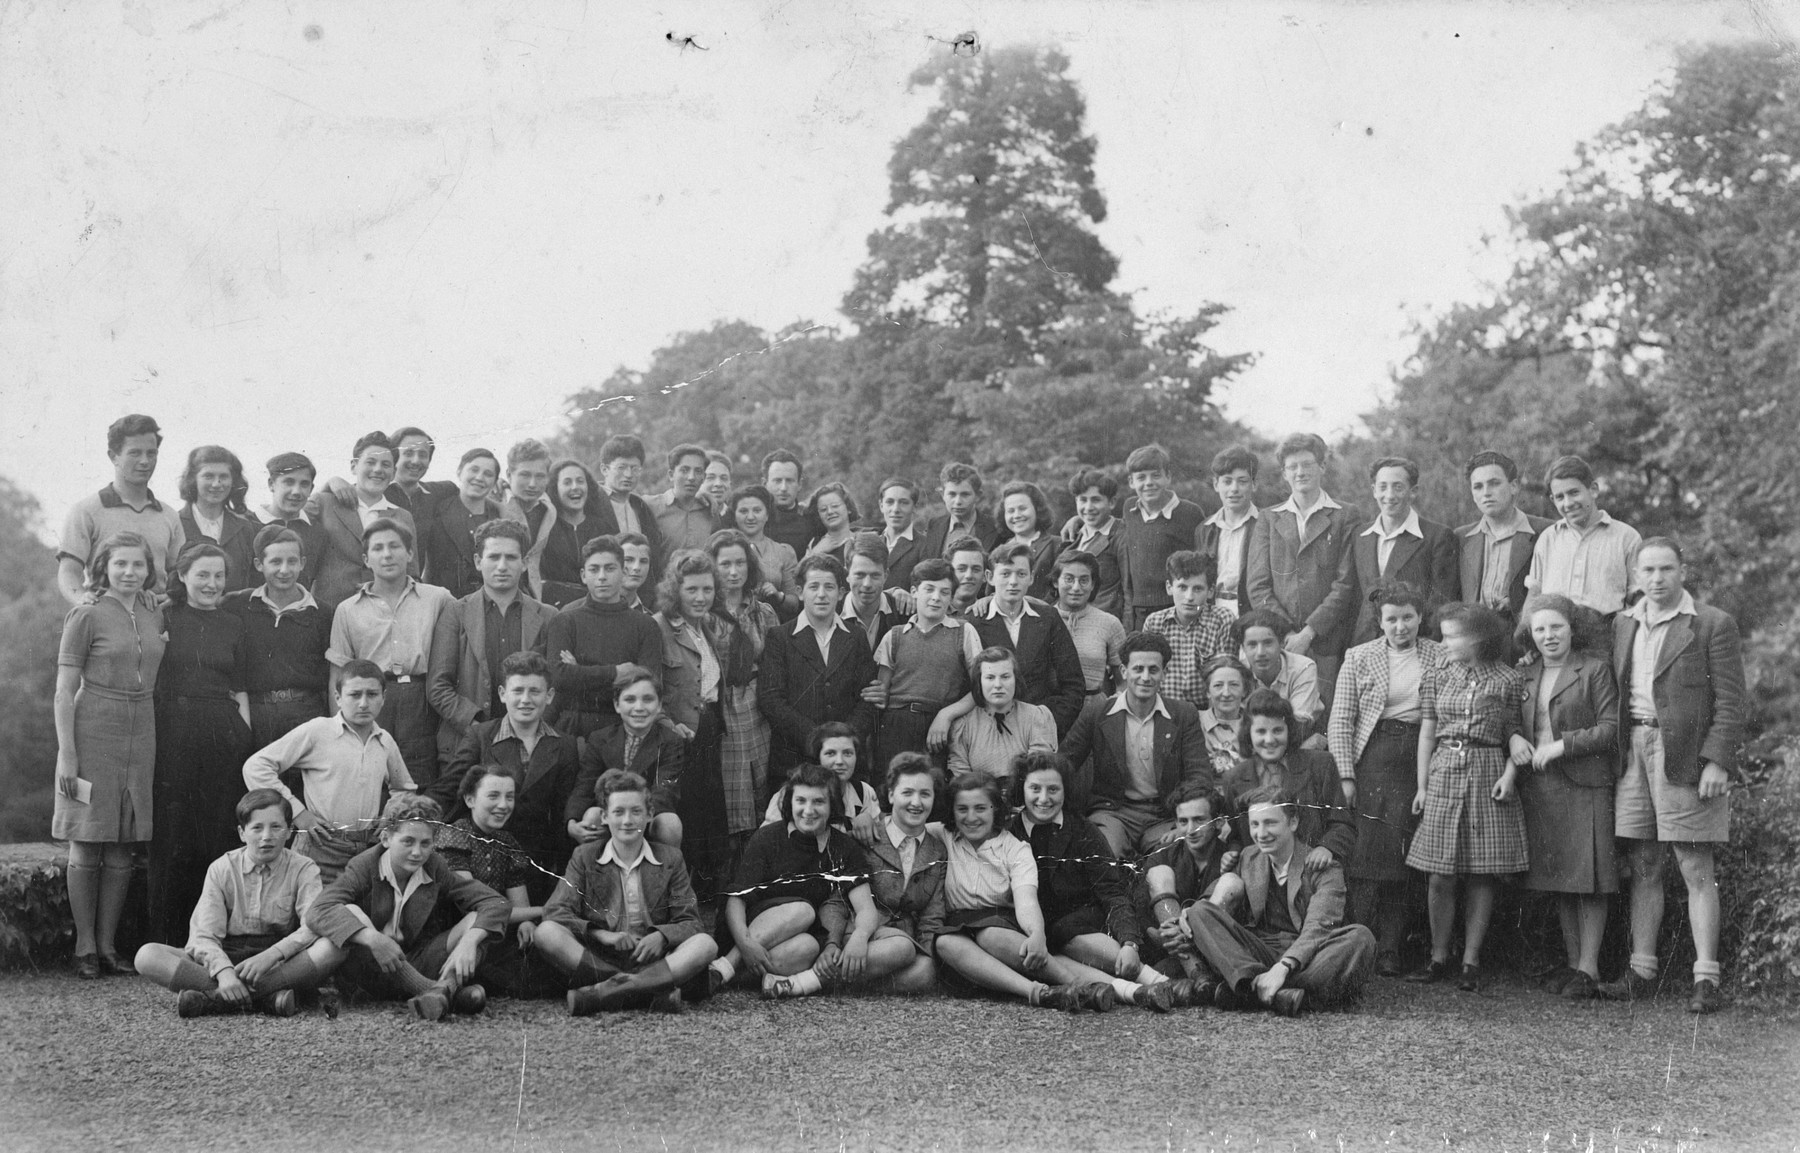 Group portrait of Jewish teenagers, who came to England on a Kindertransport, at a Zionist hachshara in Great Engeham Farm, Kent.